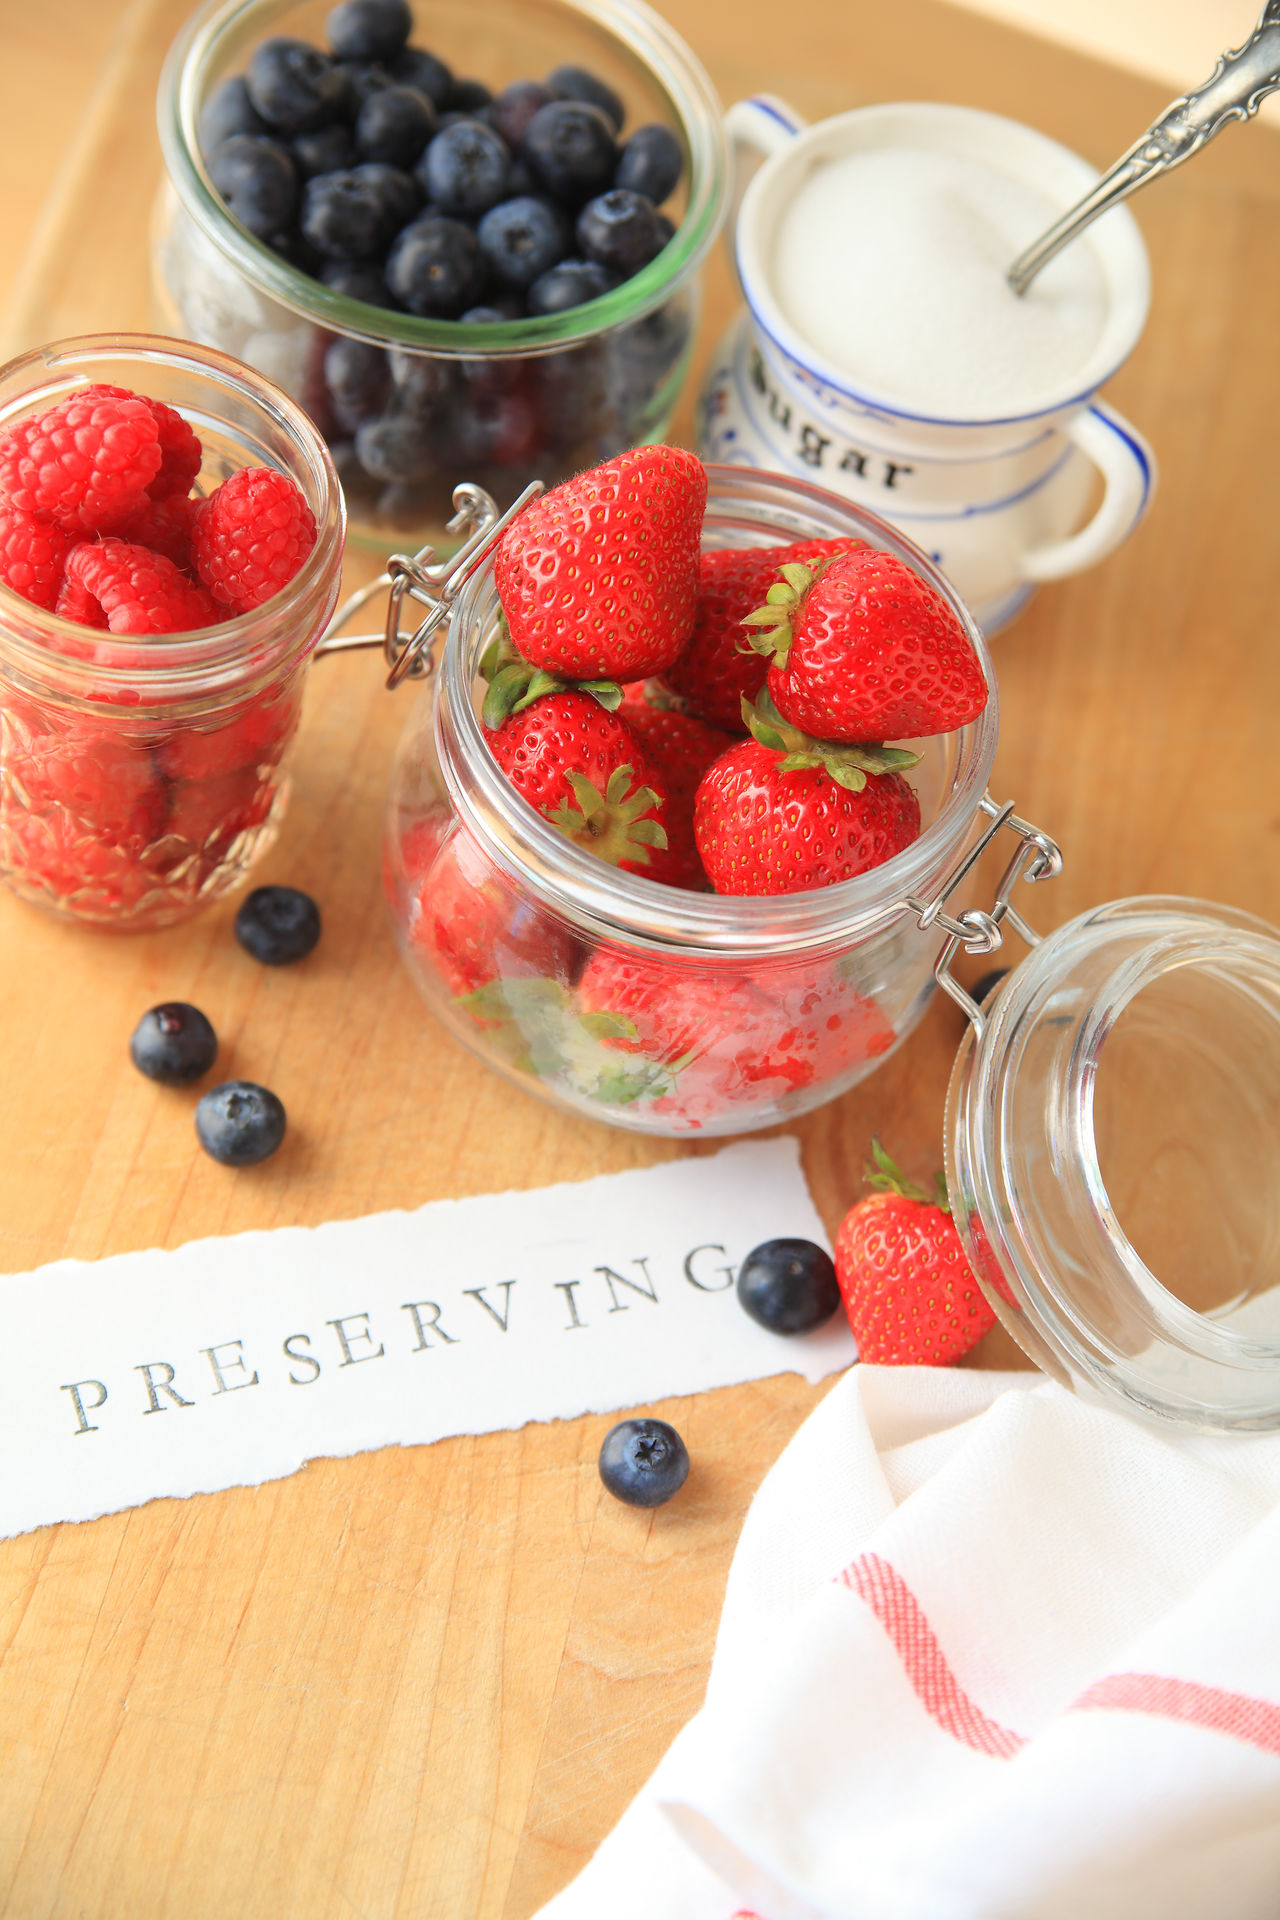 Preserving word with colorful berries Blueberries Close-up Dish Towel Fabric Food Ingredients Fresh Fruit Glass Jars Letters Making Jam Natural Light No People Overhead Preserving Food Raspberries Strawberries Sugar Summer Type Typography Wood - Material Word